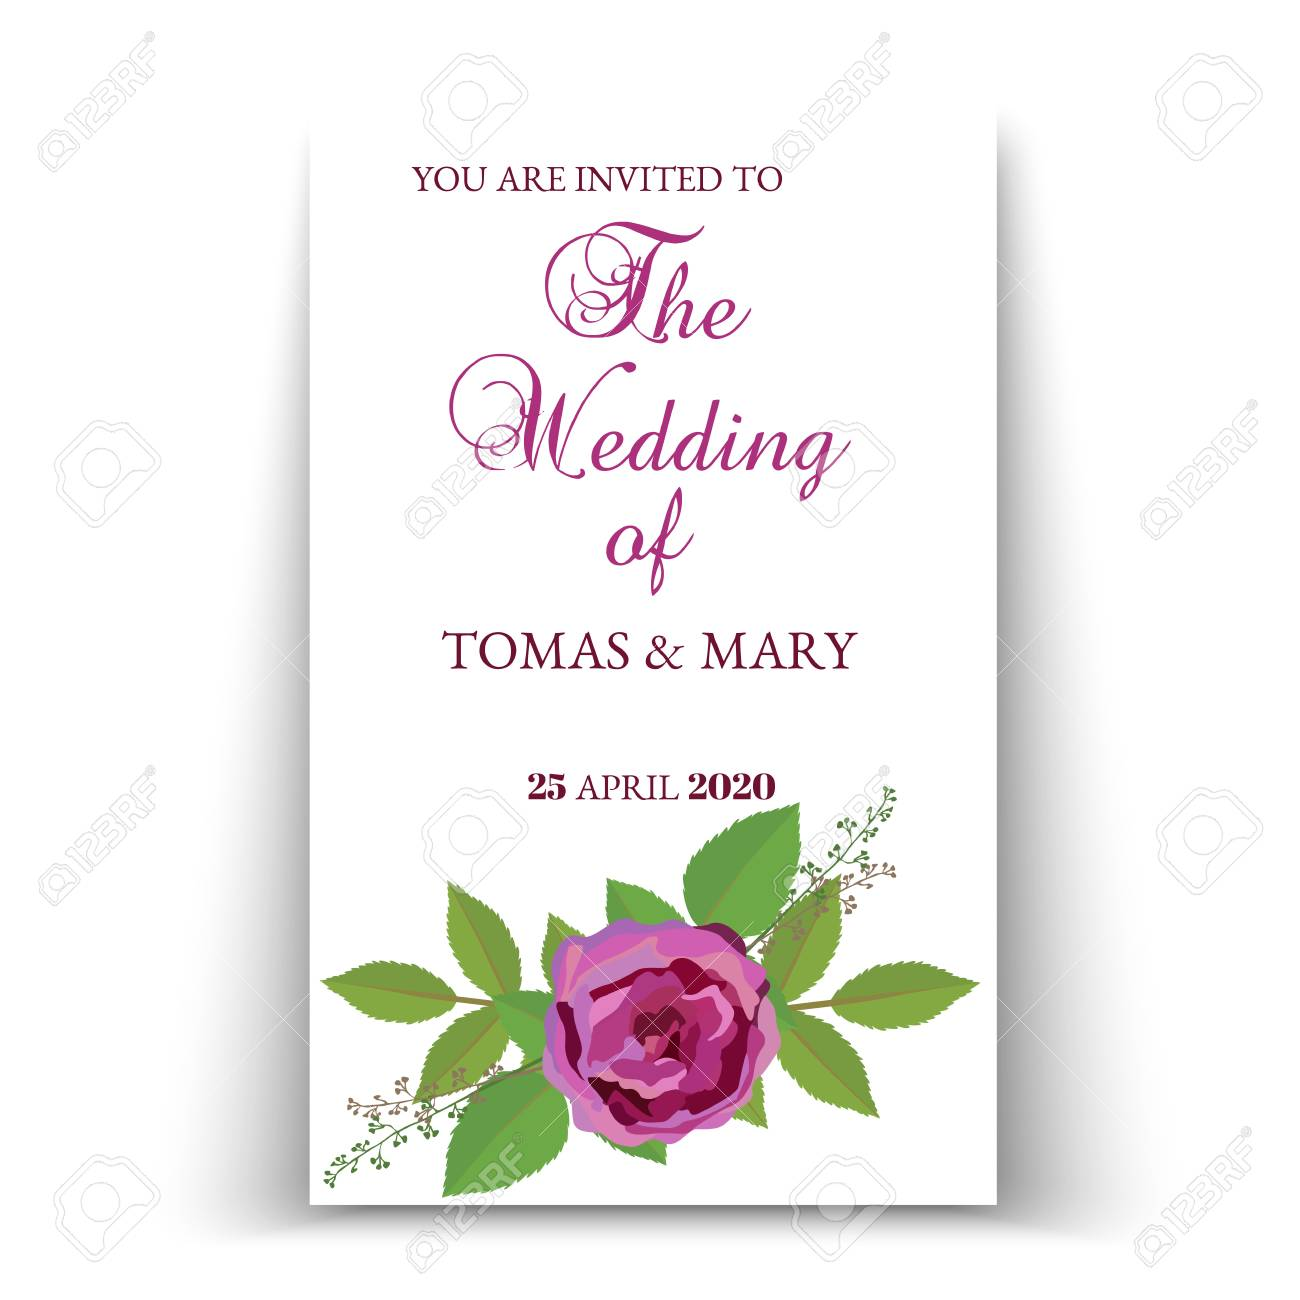 greenery rustic wedding invitation template with rose and leaf